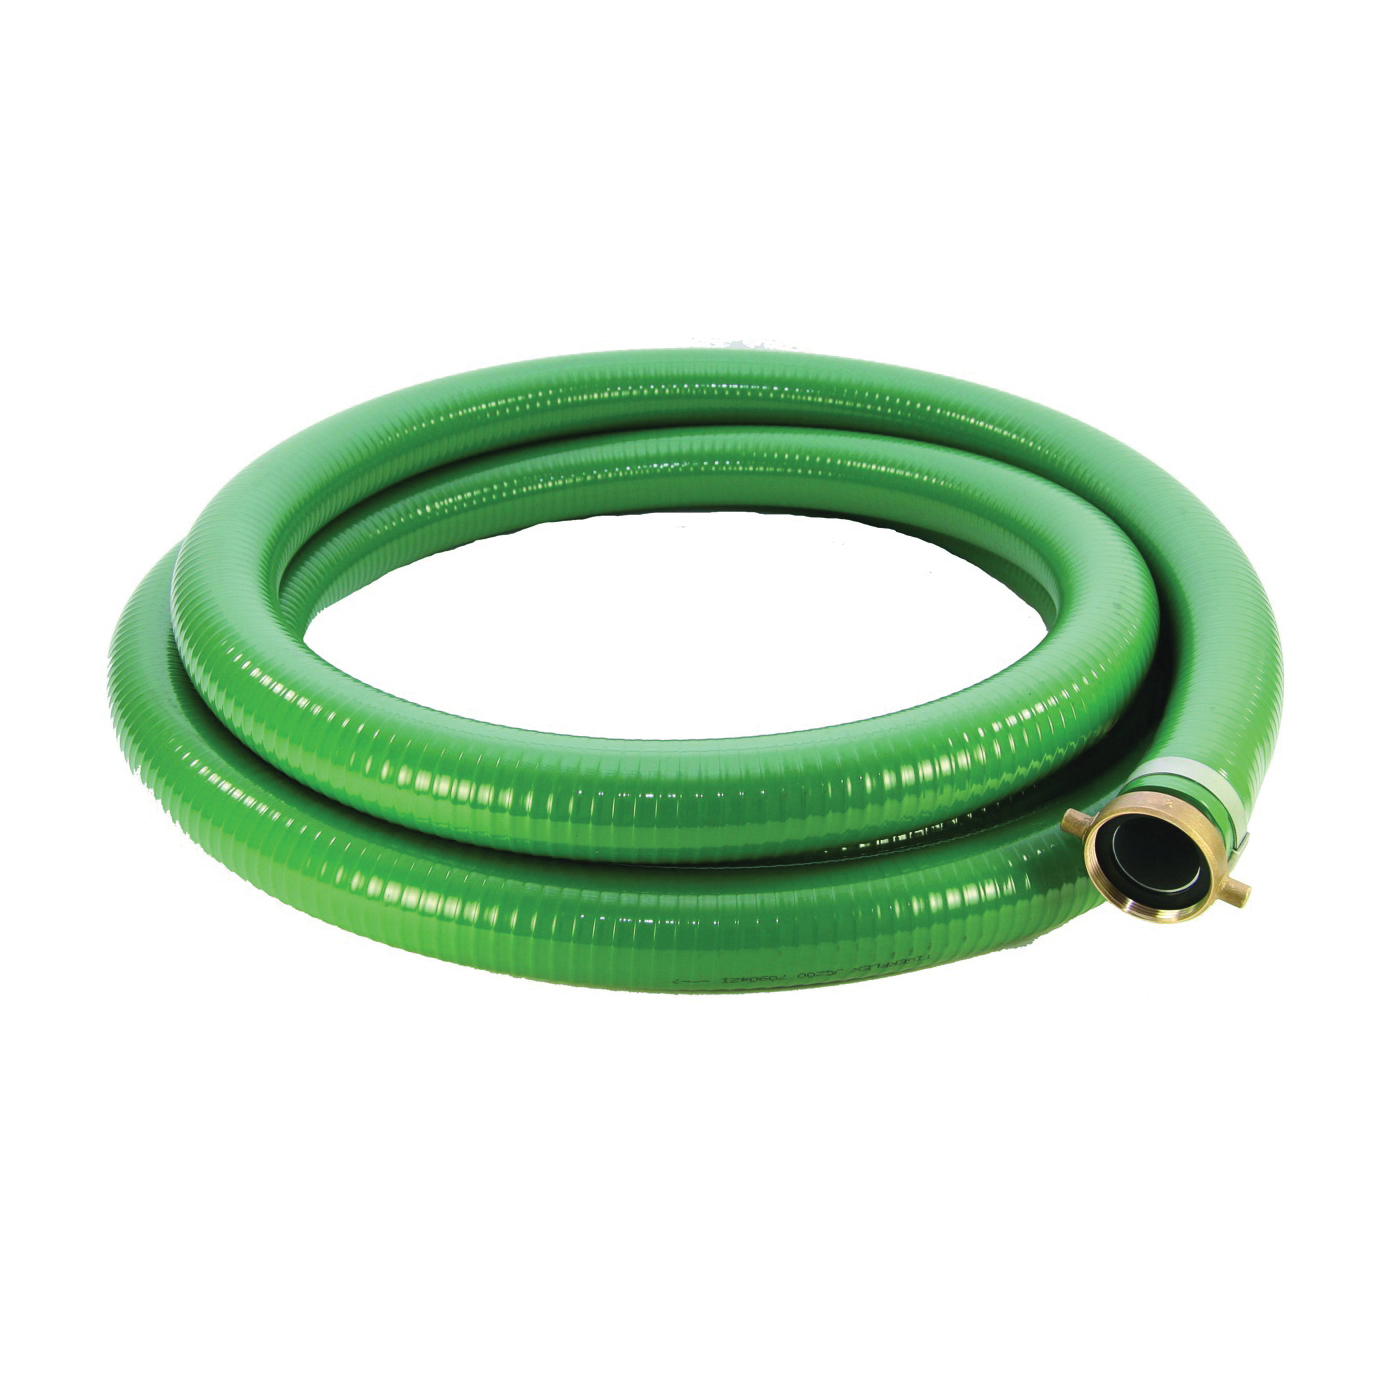 Picture of ABBOTT RUBBER 1240-2000-20 Suction Hose, 2 in ID, 20 ft L, Male Thread x Female, PVC